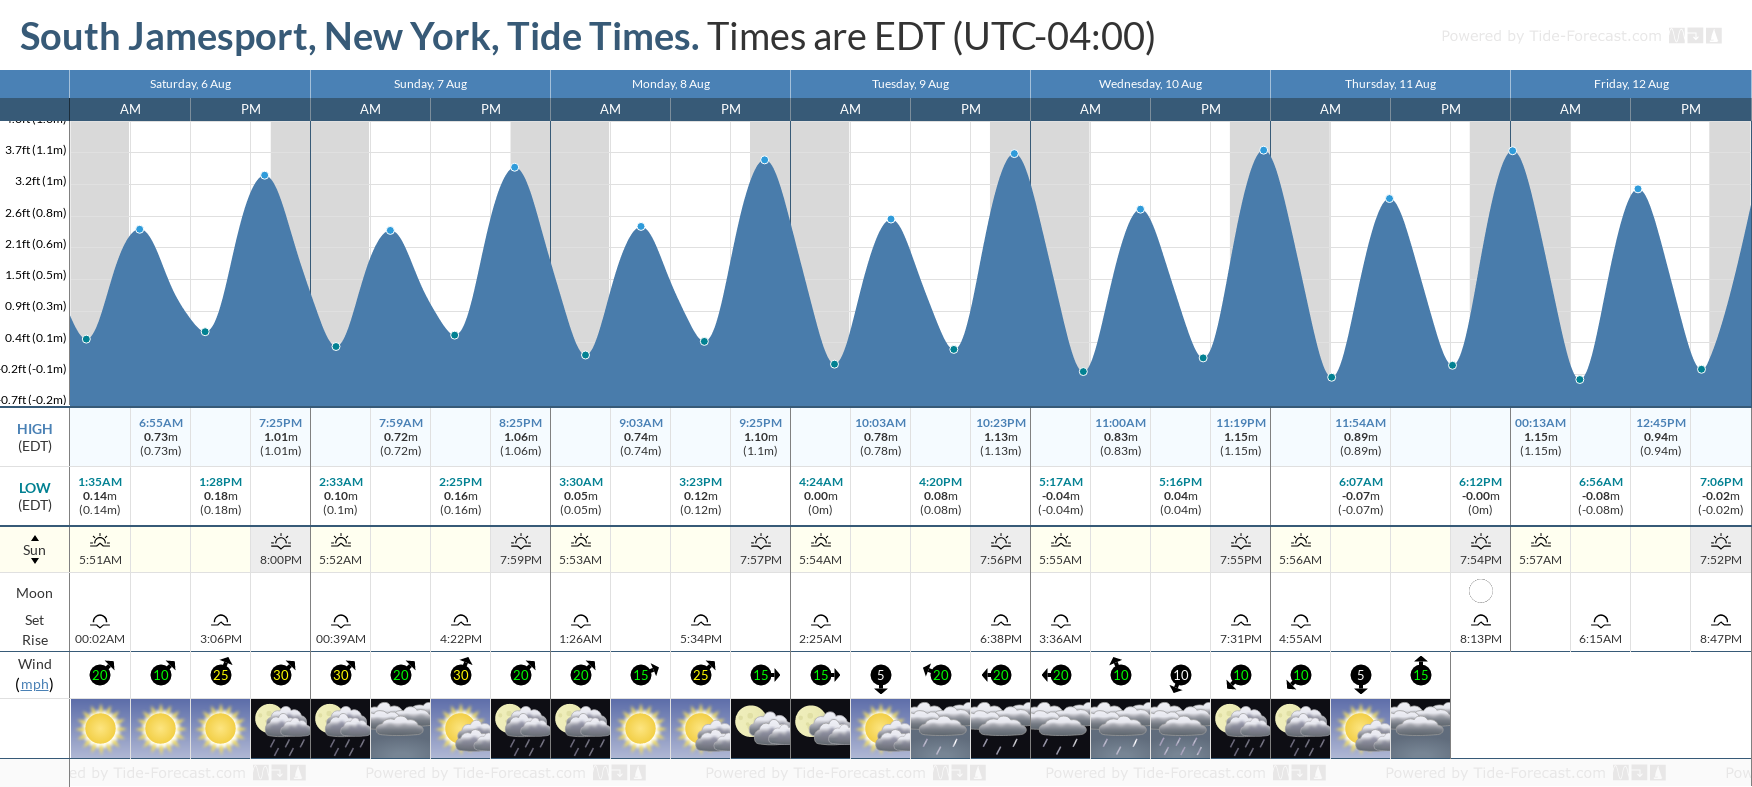 South Jamesport, New York Tide Chart including high and low tide tide times for the next 7 days